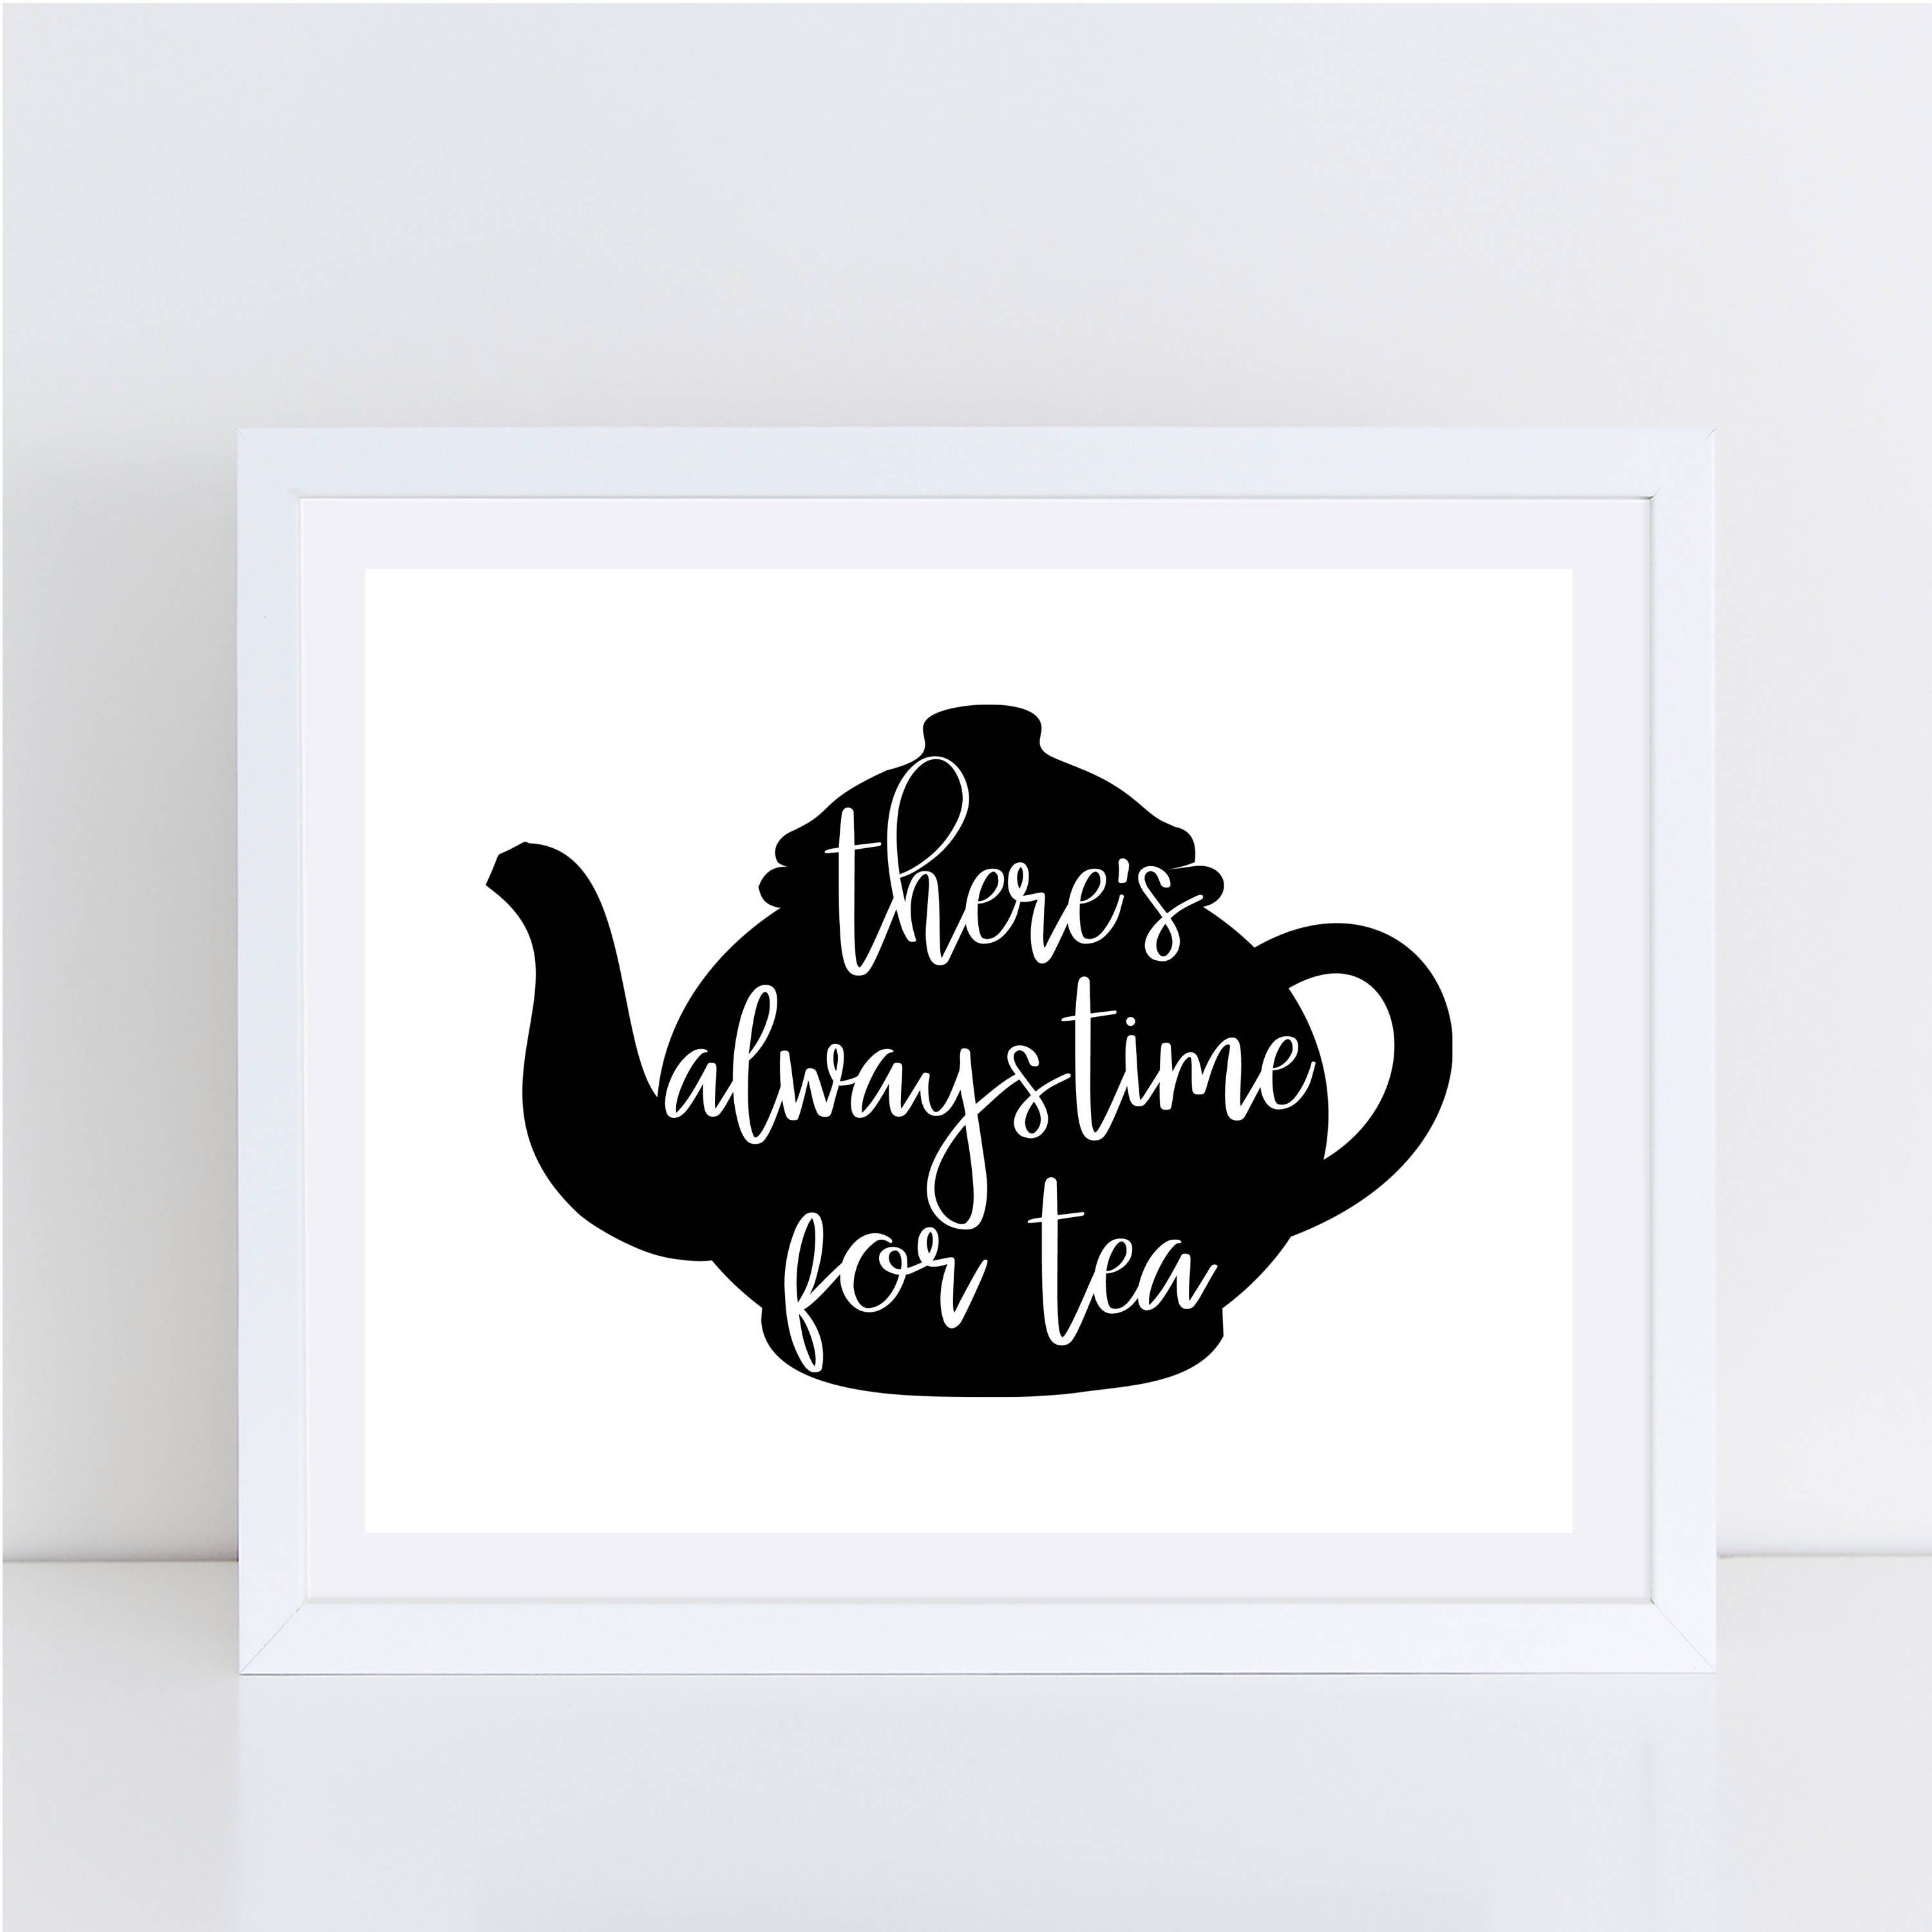 picture relating to Teapot Printable named Teapot Printable - Theres Often Period For Tea - Wall Decor - Electronic Prints - Black Teapot - Quick PRINTABLES - Measurements 5x7 and 8x10